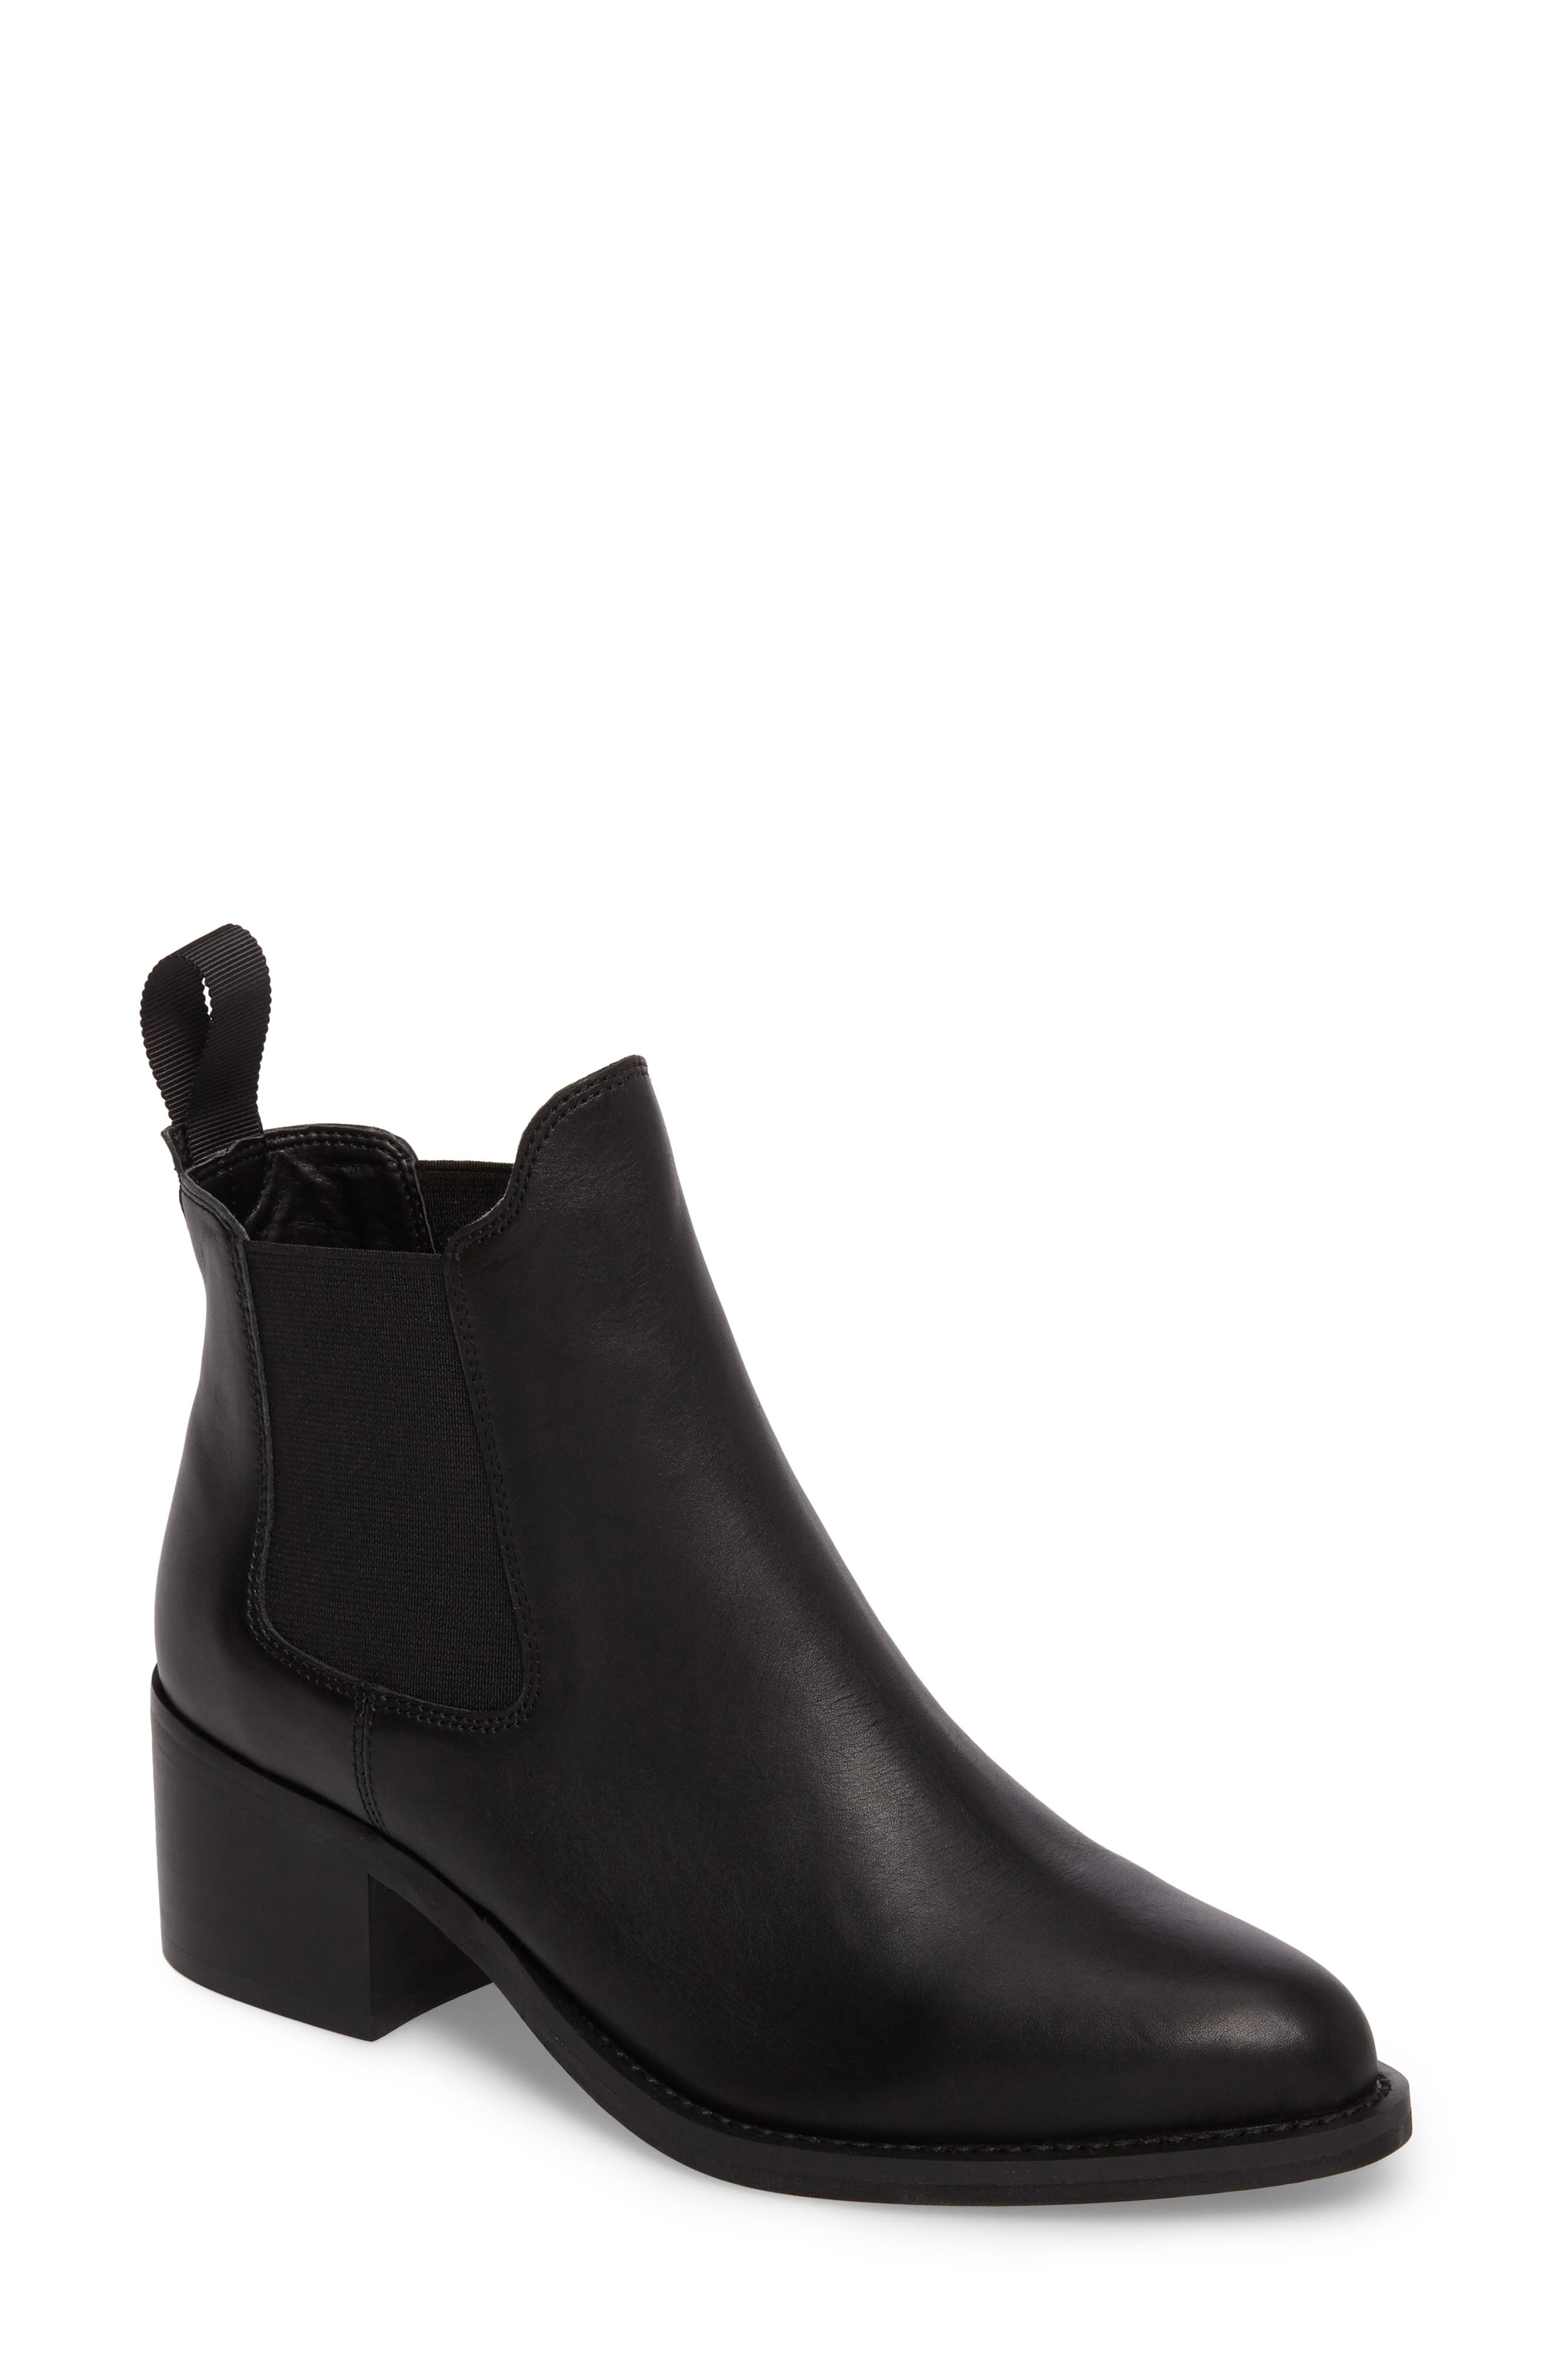 TONY BIANCO Fraya Ankle Bootie in Black Leather